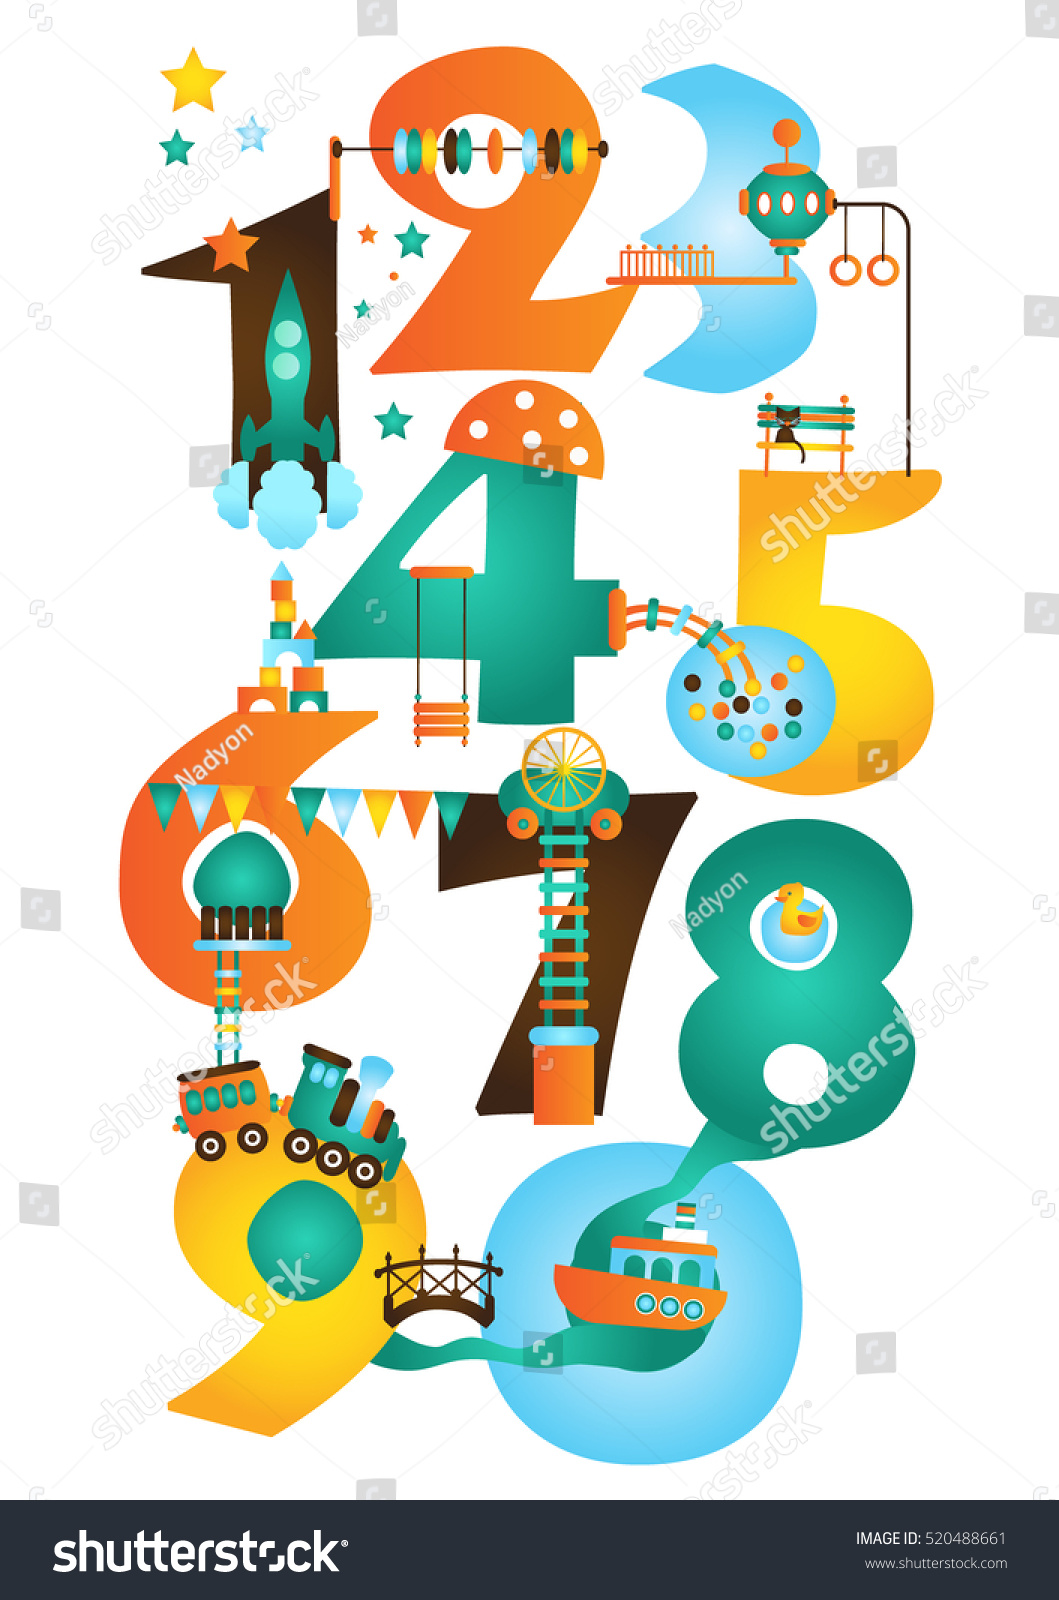 Play Learn Early Math Learn Numbers Stock Vector (Royalty Free ...